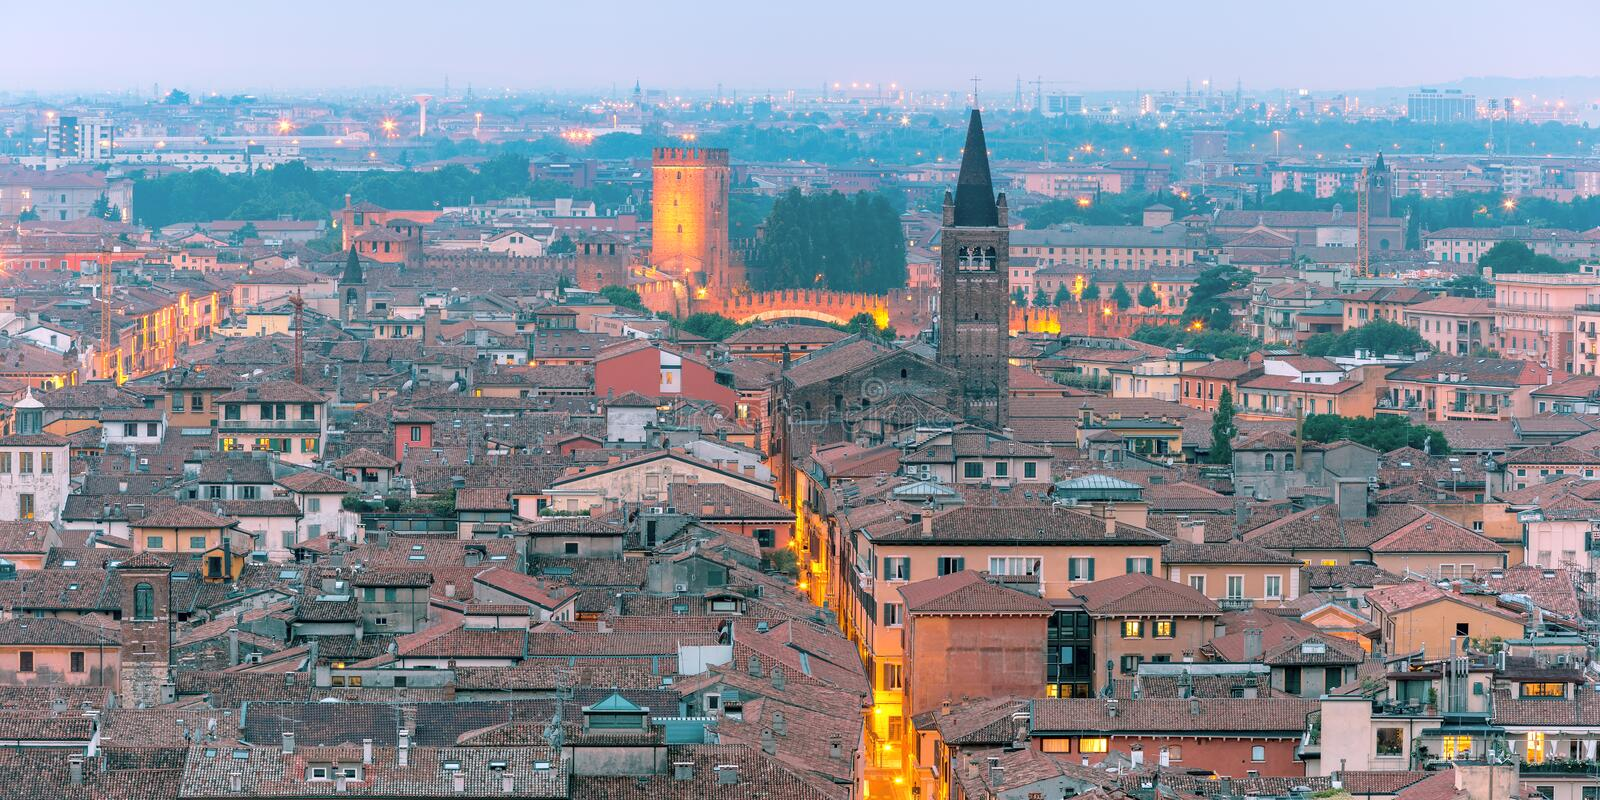 Verona skyline at night, Italy royalty free stock photos